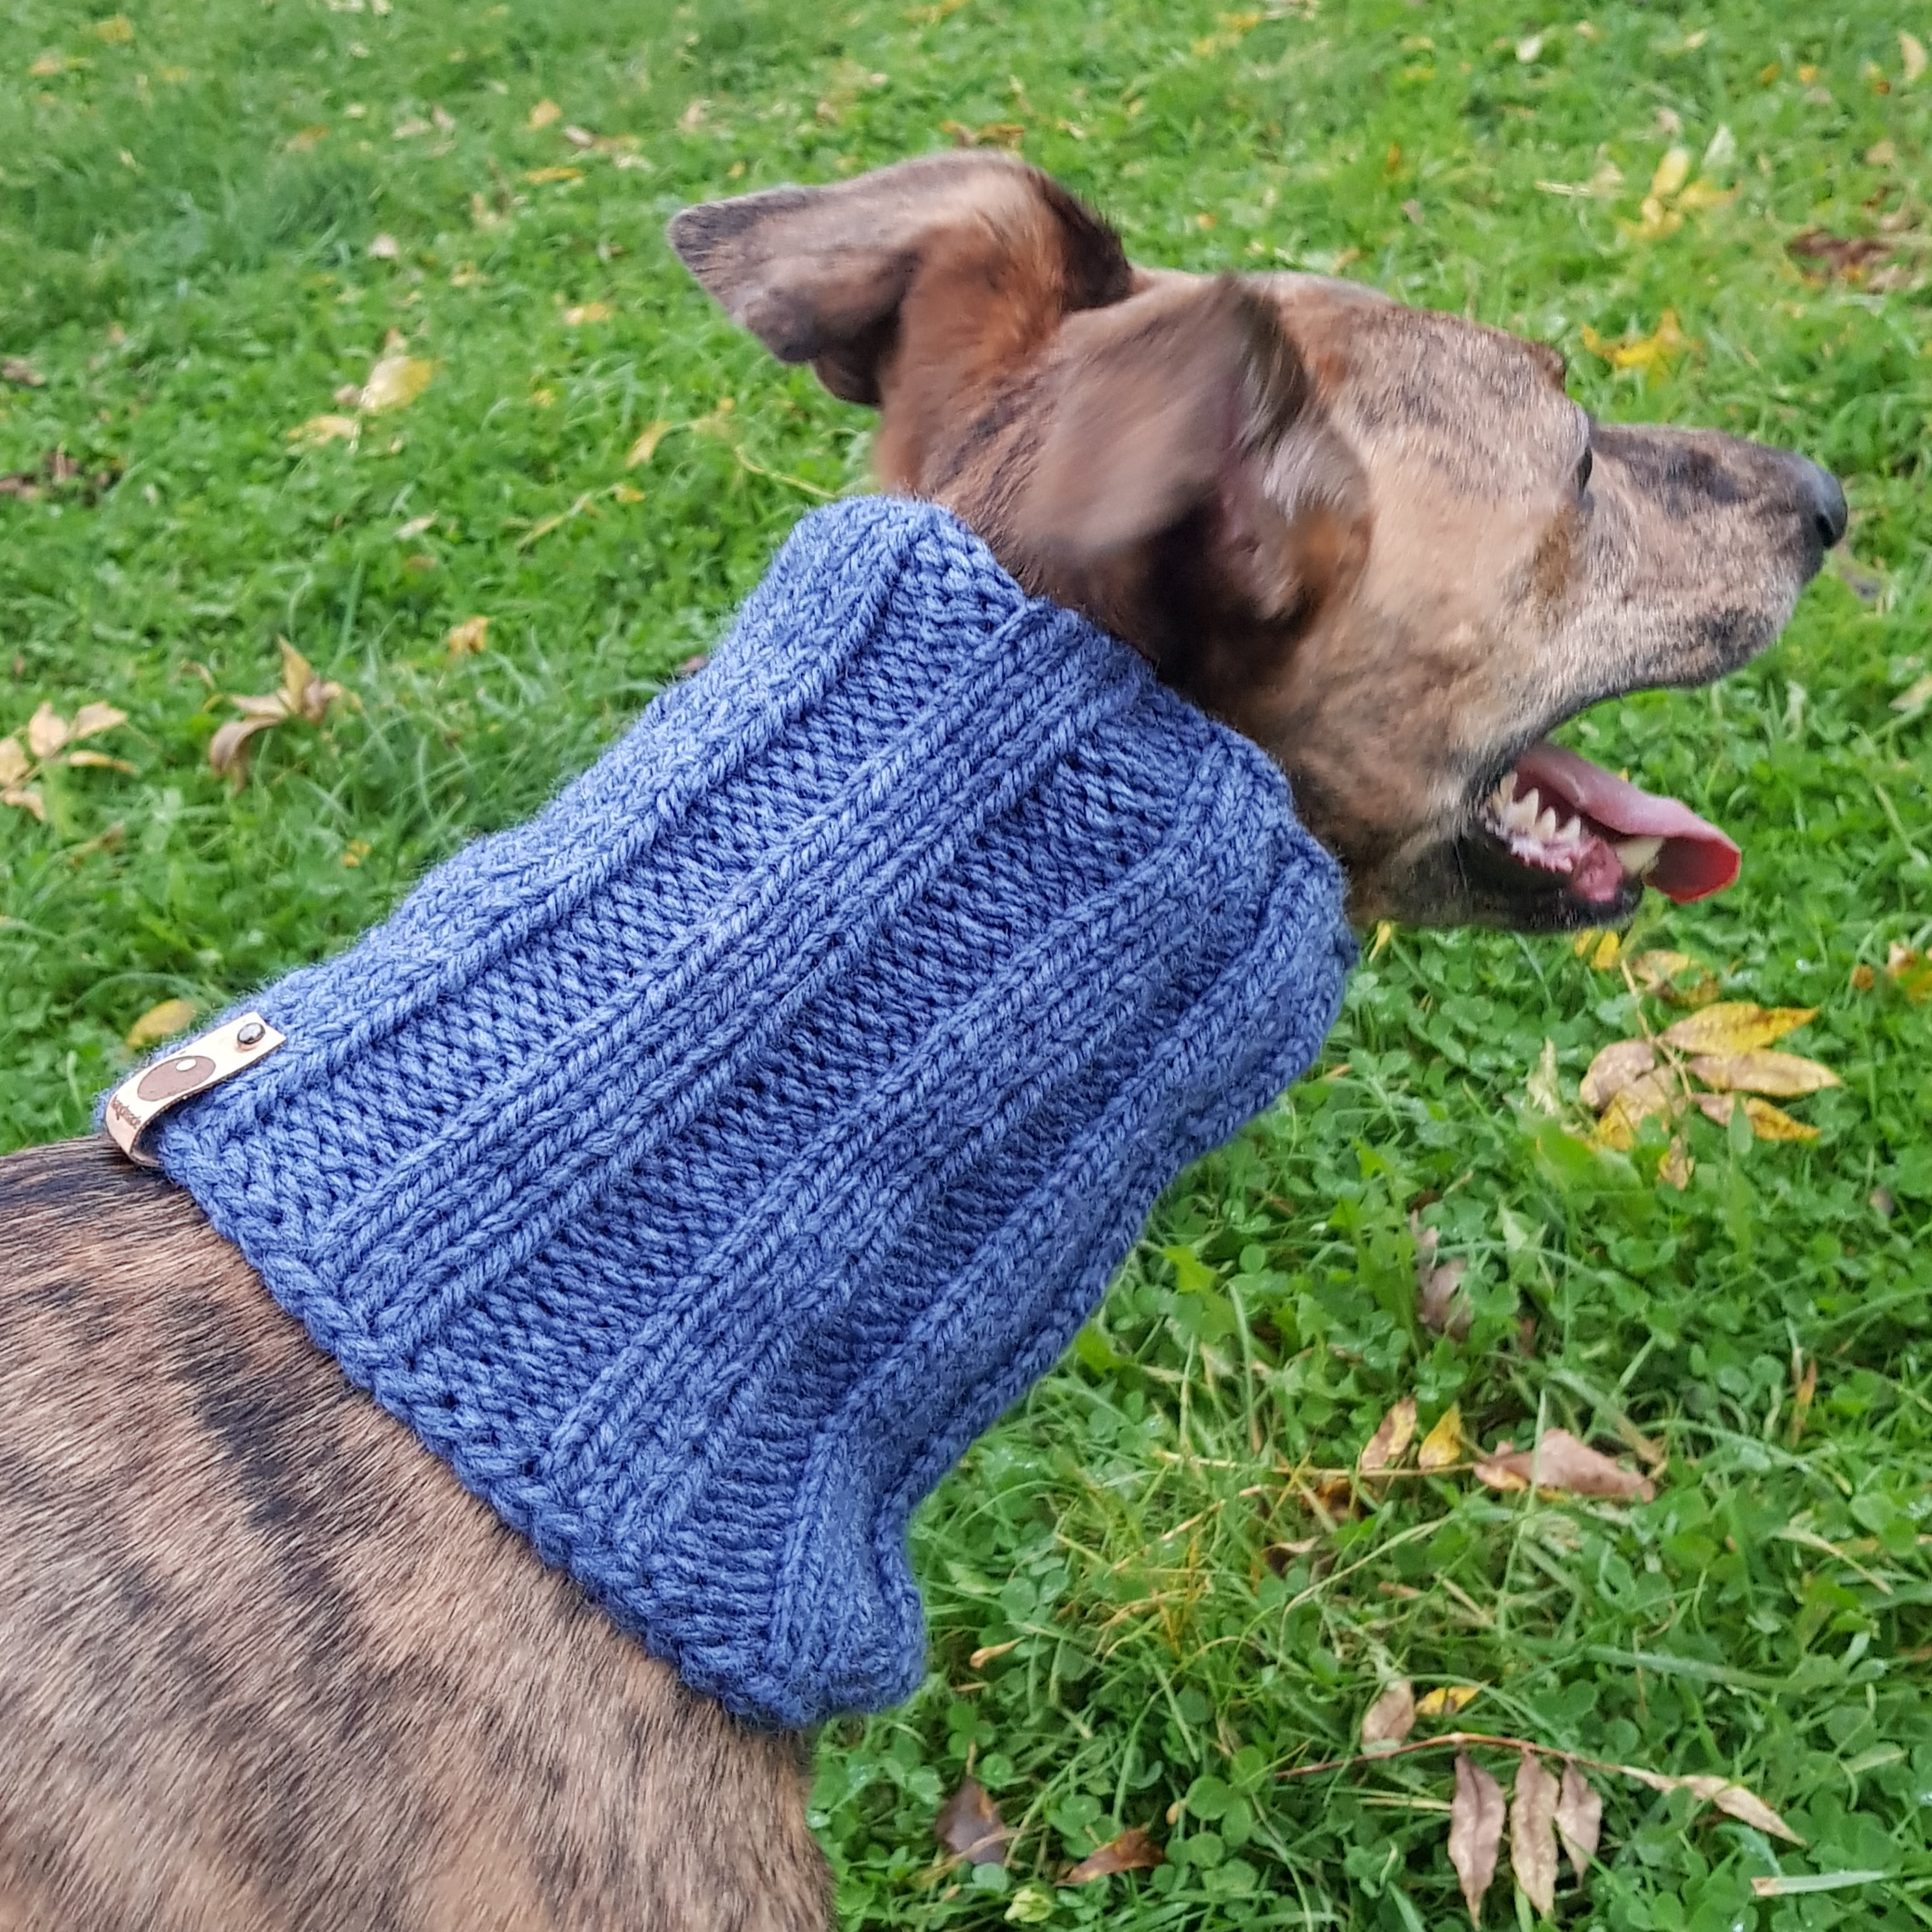 DOG SNOODS (HAND KNITTED) - An Englishman in Moravia